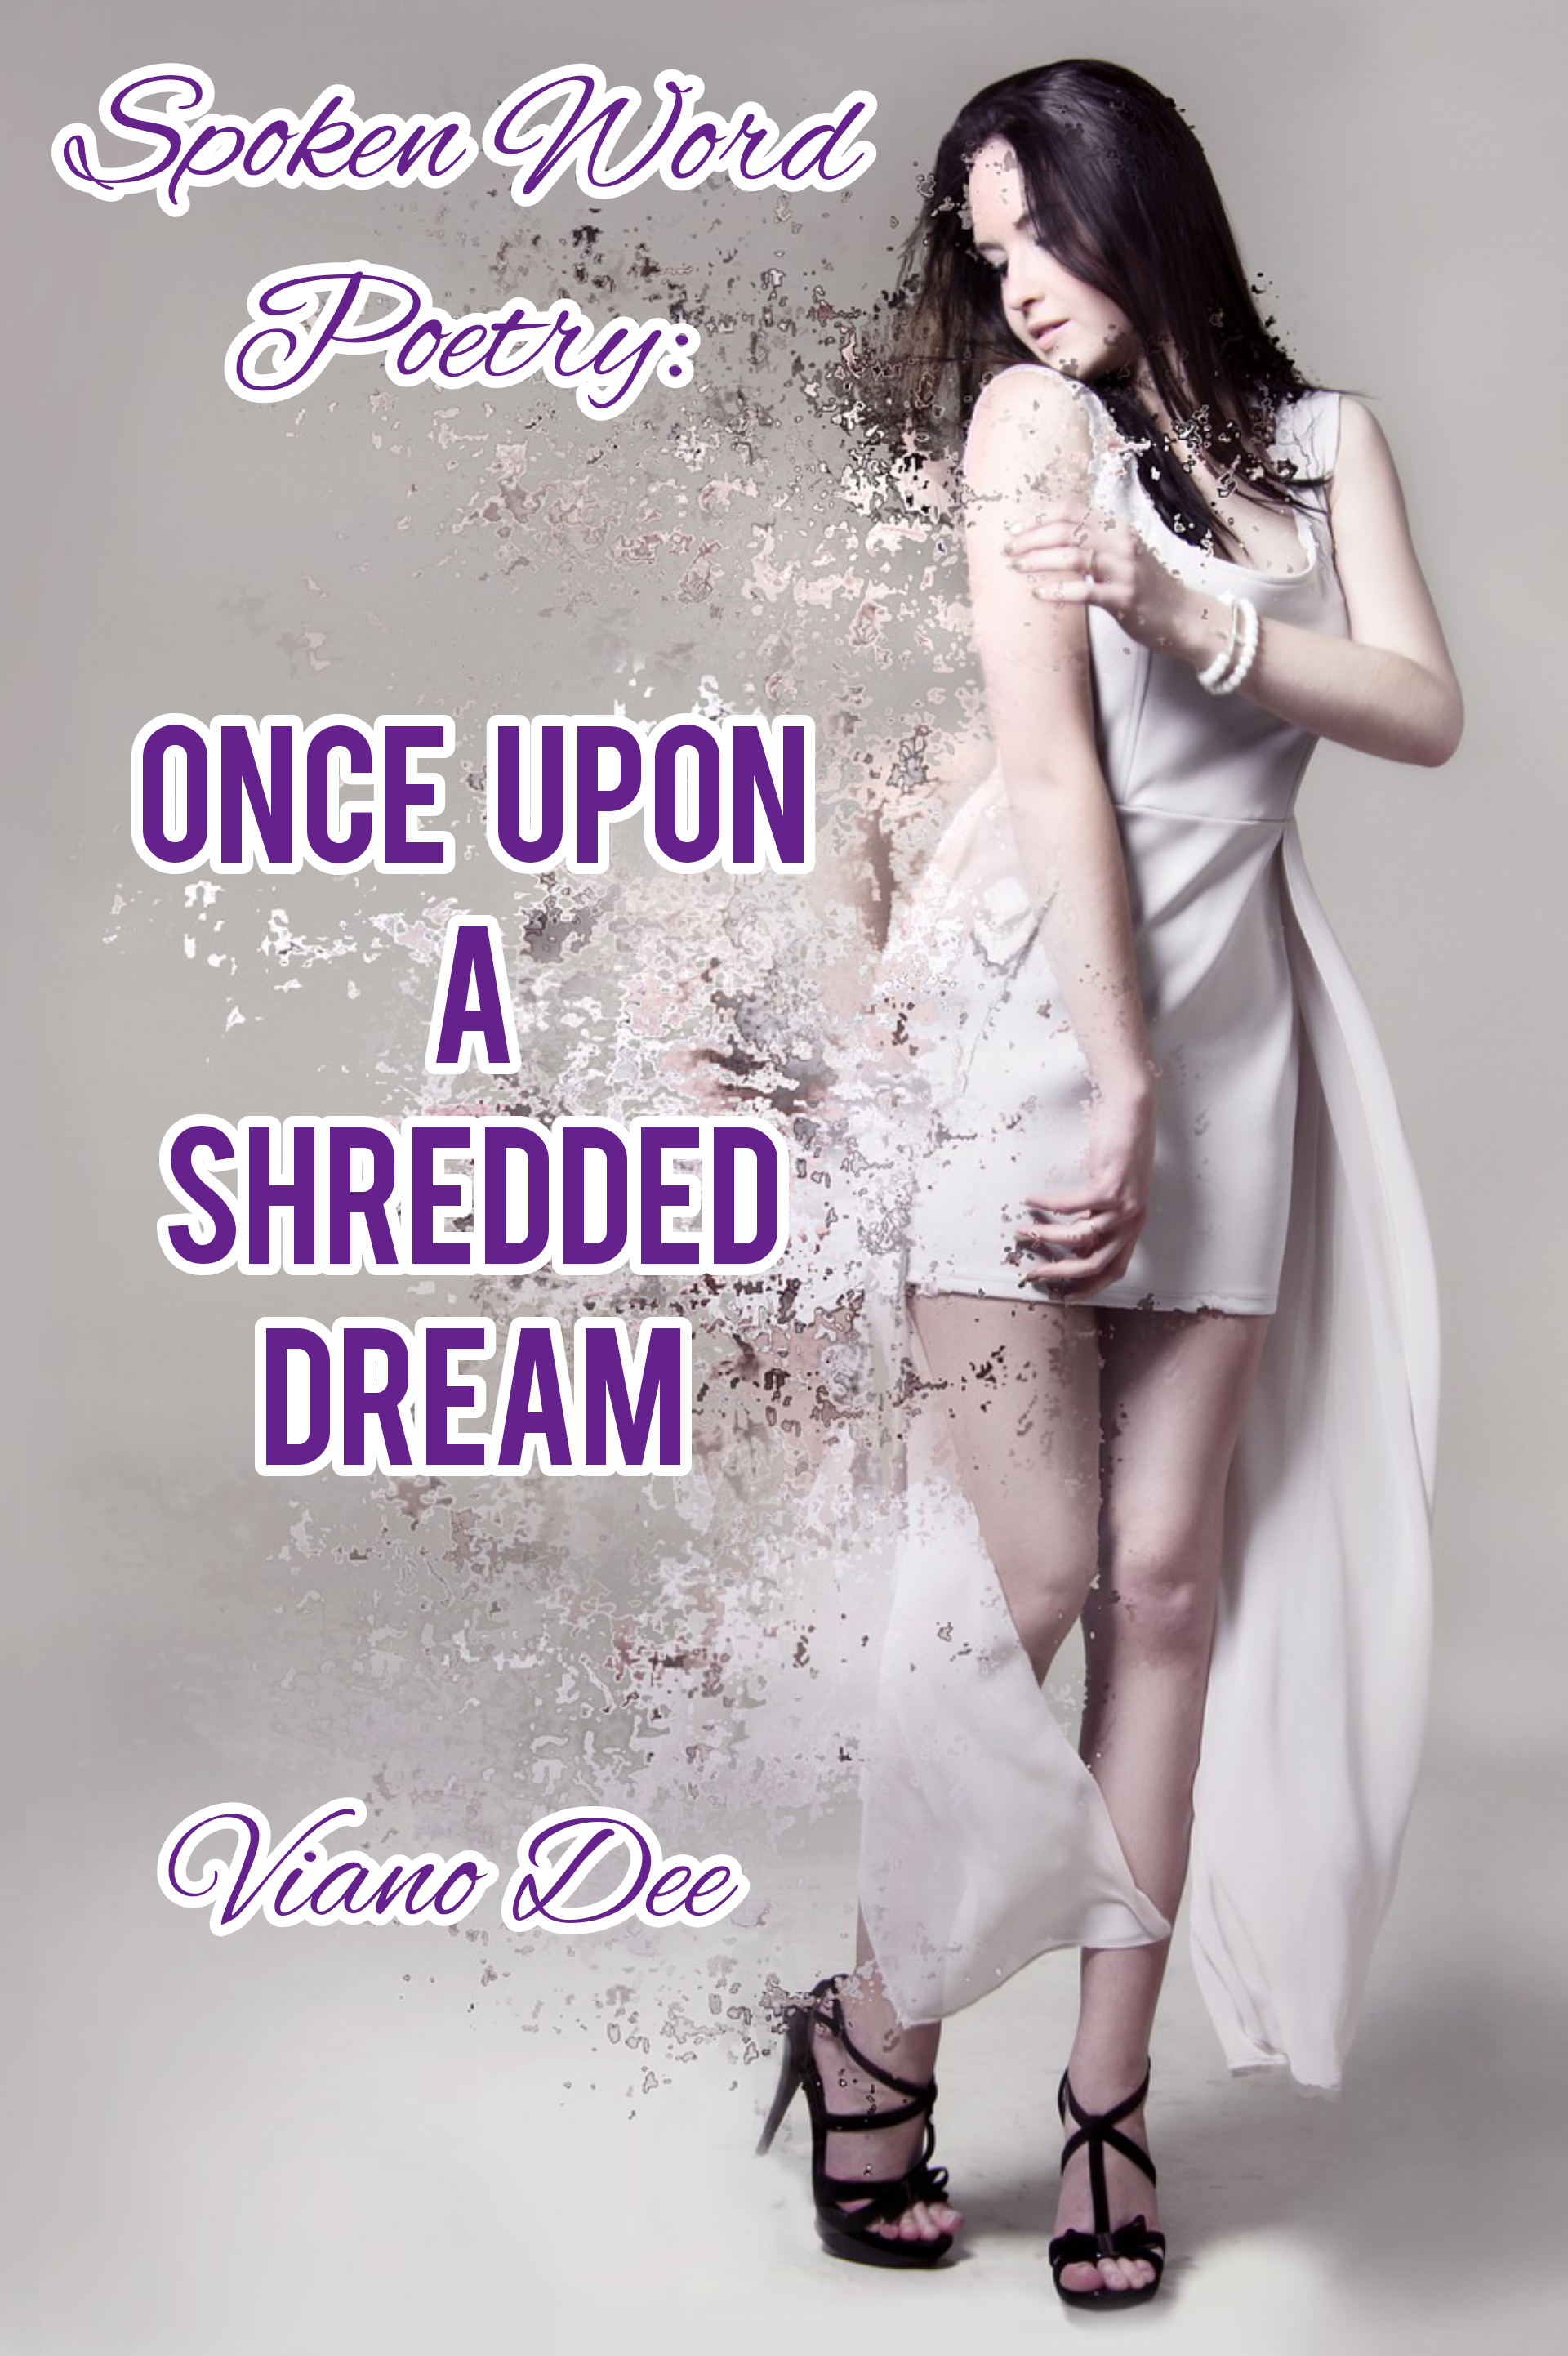 Once Upon a Shredded Dream